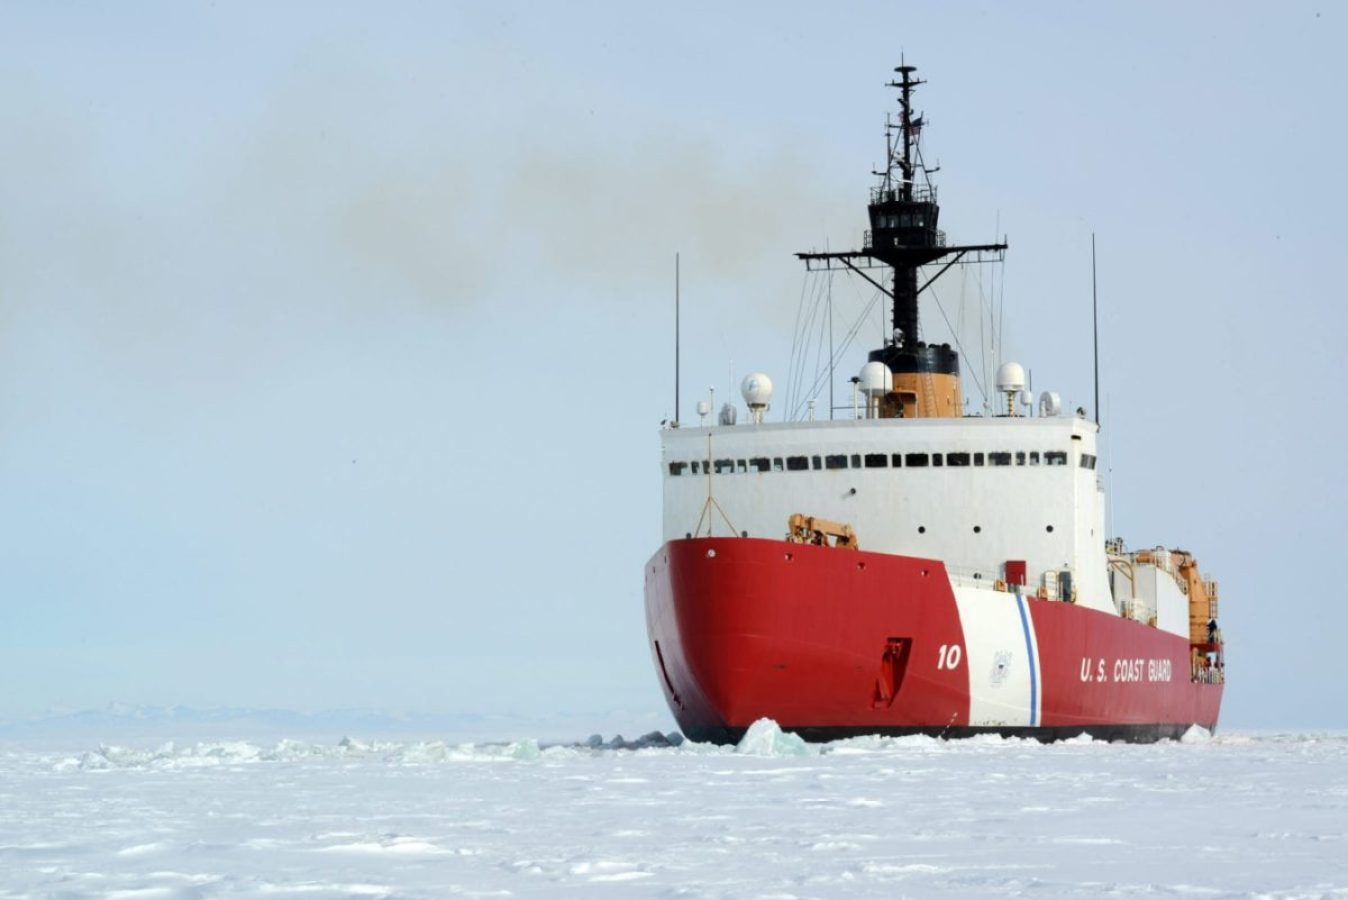 The Coast Guard Cutter Polar Star backs and rams through dense ice off the Antarctic coast, Jan. 15, 2017. The Polar Star and its crew work to establish a resupply channel through Antarctic ice to enable ships to reach the National Science Foundation's McMurdo Station every year. Polar Star is the nation's only heavy icebreaker, and is 43 years old.